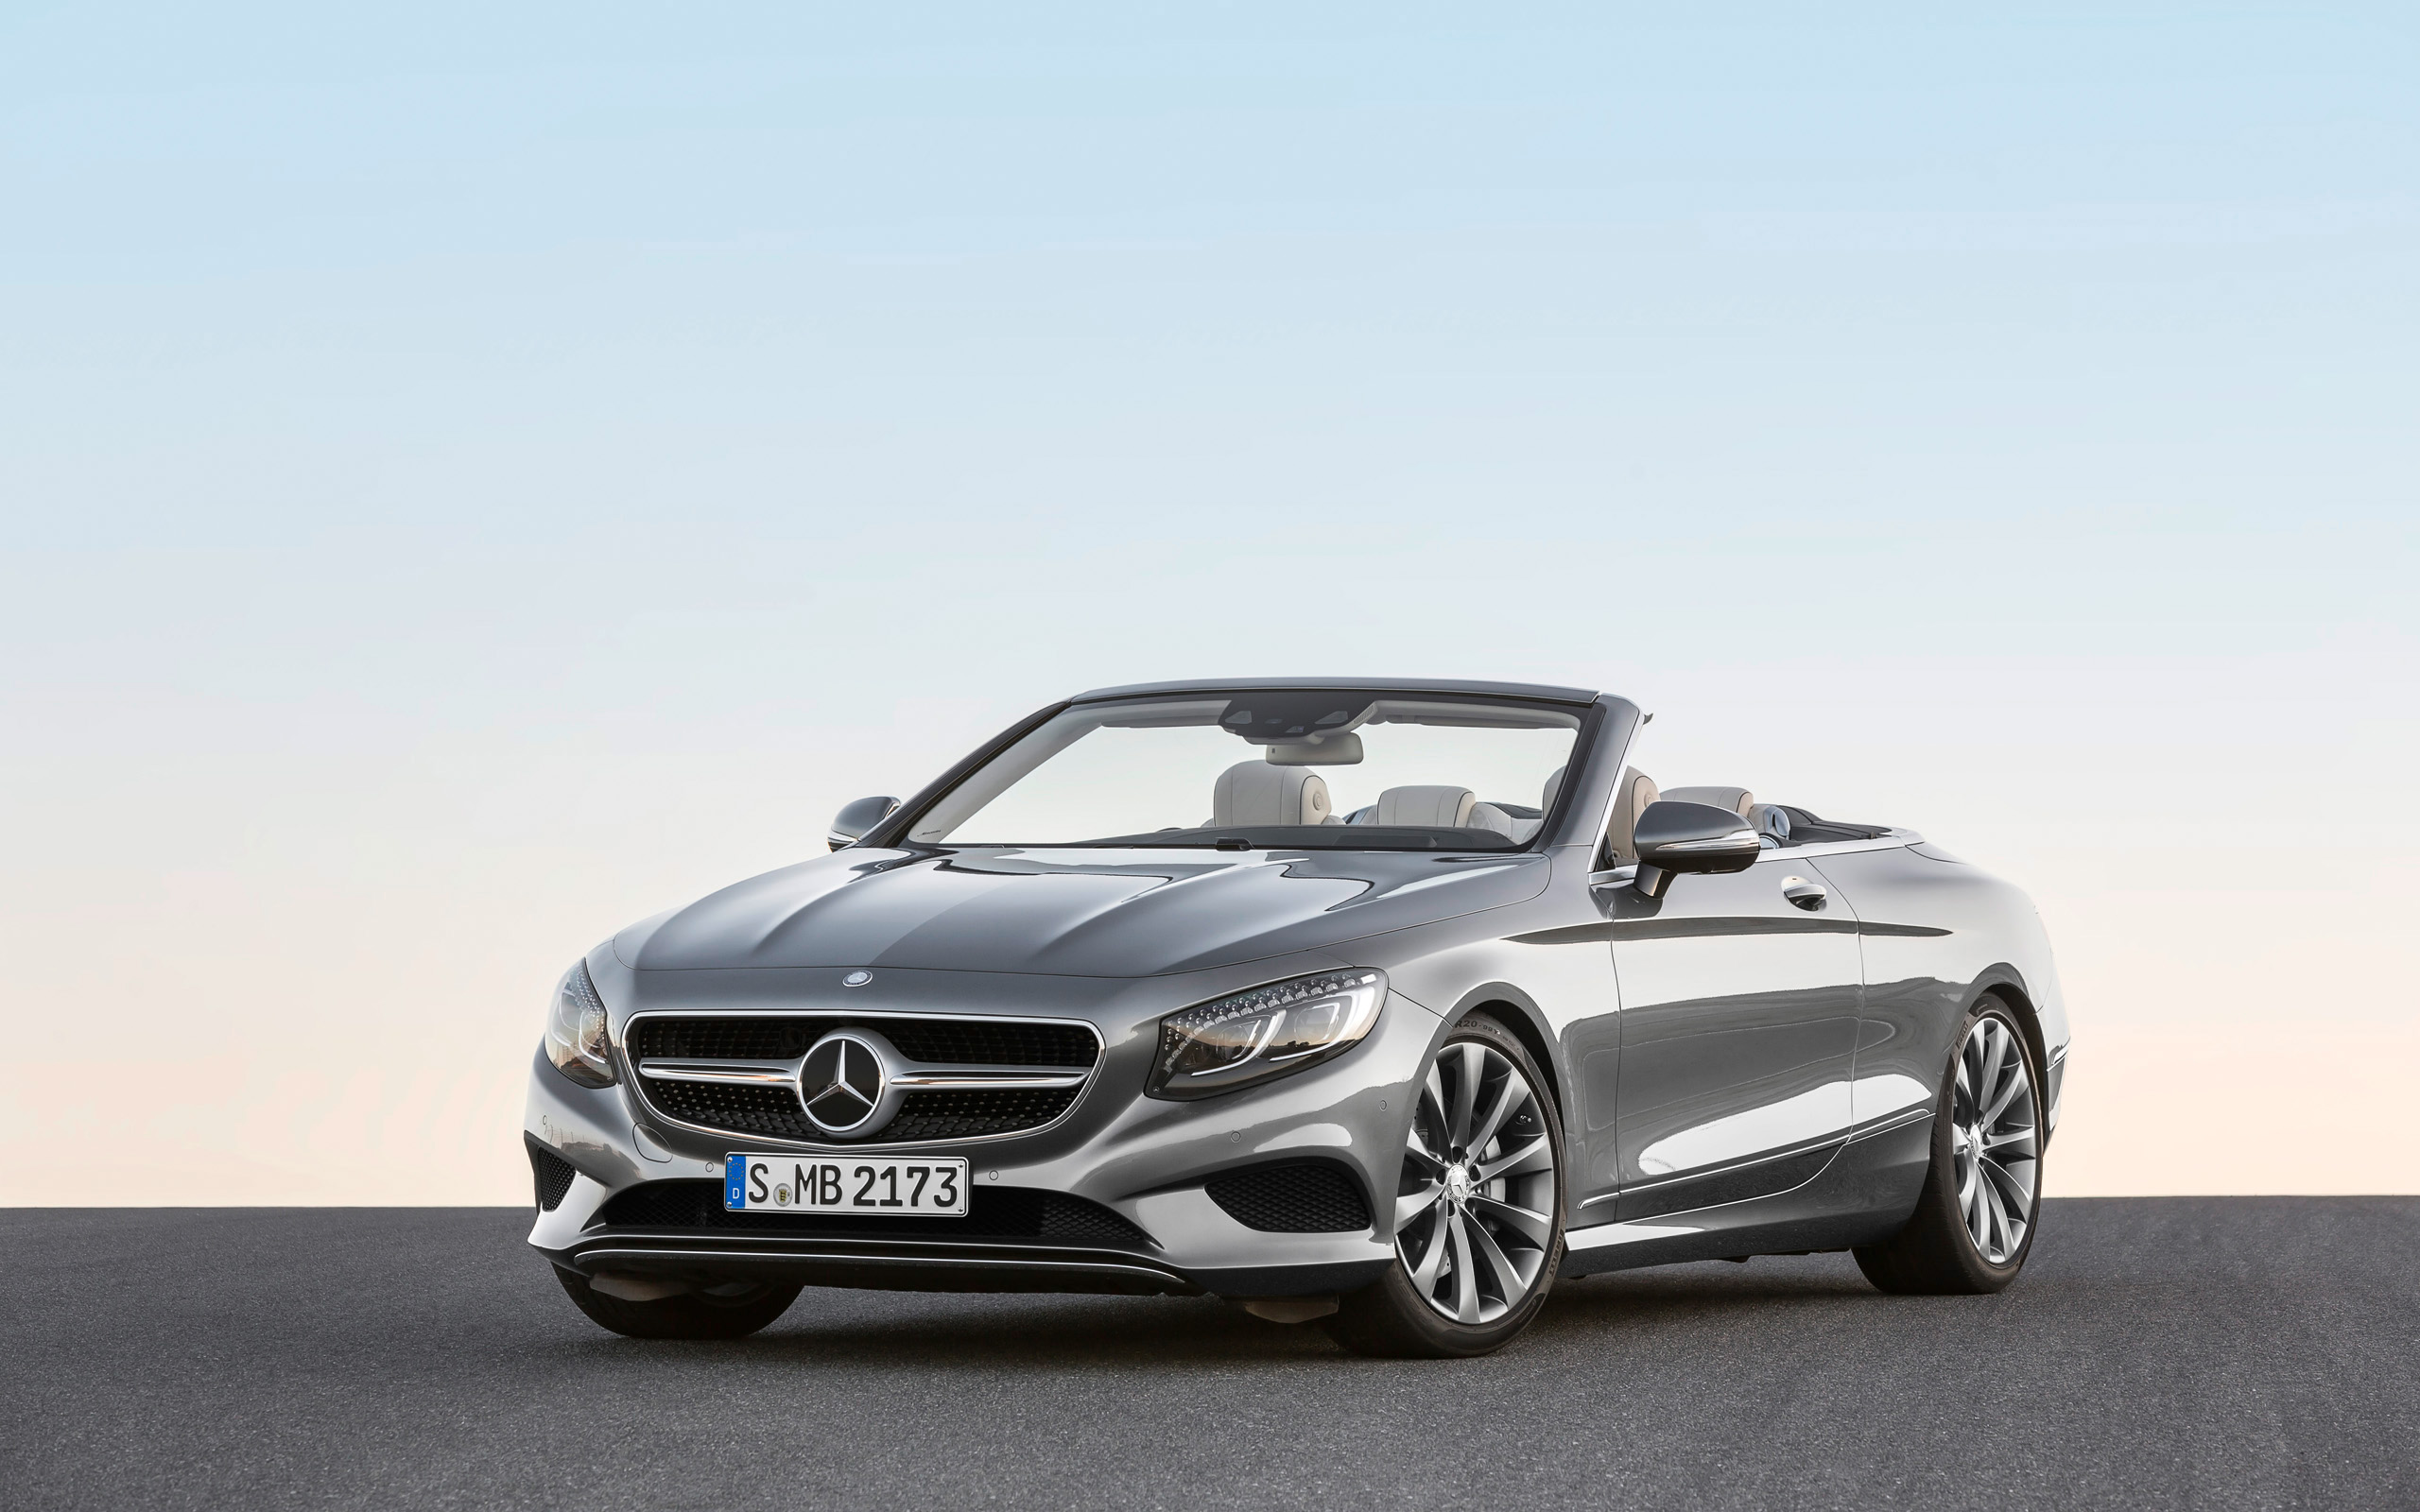 2016 mercedes benz s class cabriolet wallpaper hd car